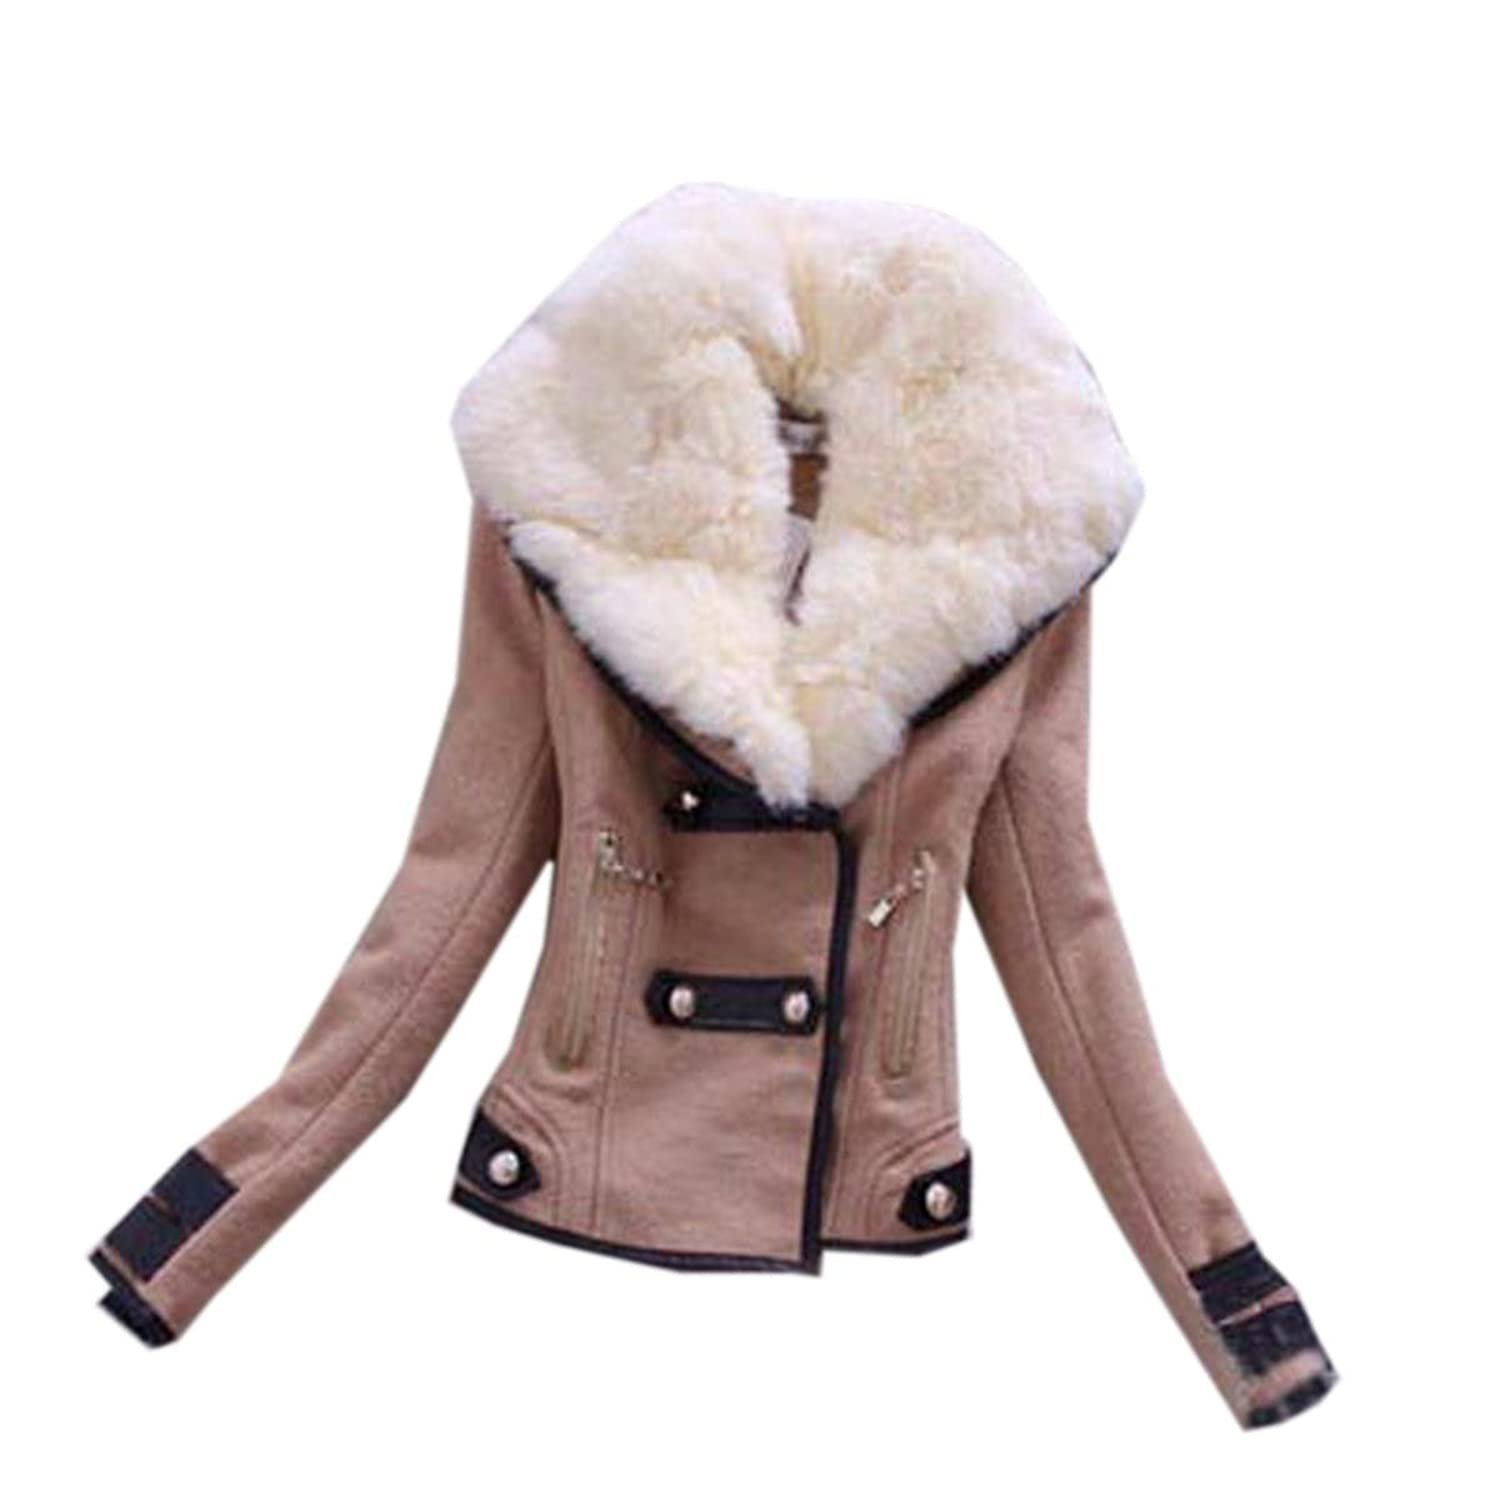 blouson femme hiver ilovesia manteau femme chaud parka hiver fourrure avec capuche militaire style. Black Bedroom Furniture Sets. Home Design Ideas